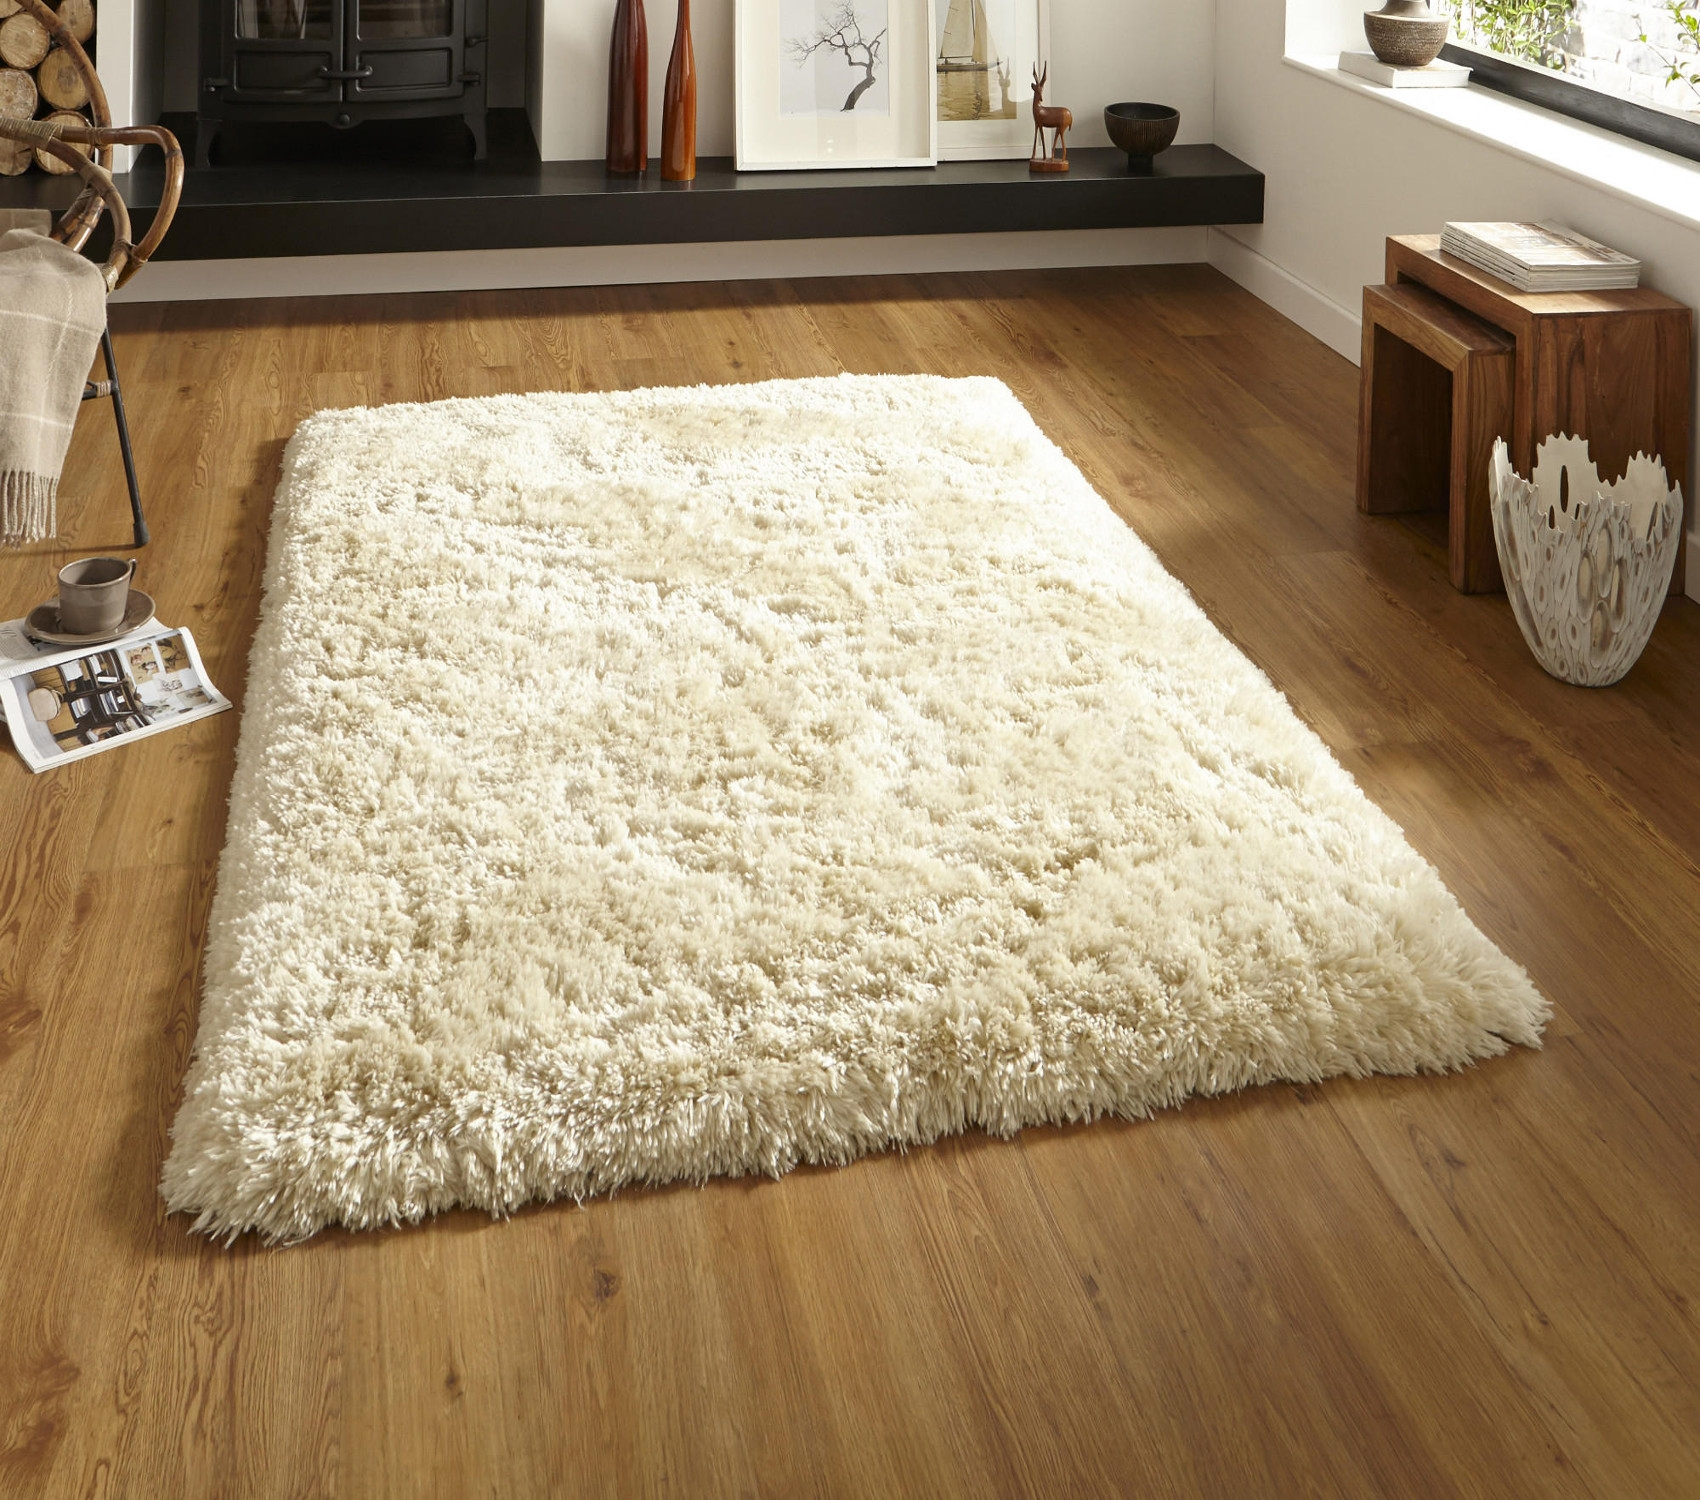 Flooring Enticing Cream Shag Rug For Decorating Your Floor Within Shaggy Rugs (Image 2 of 15)